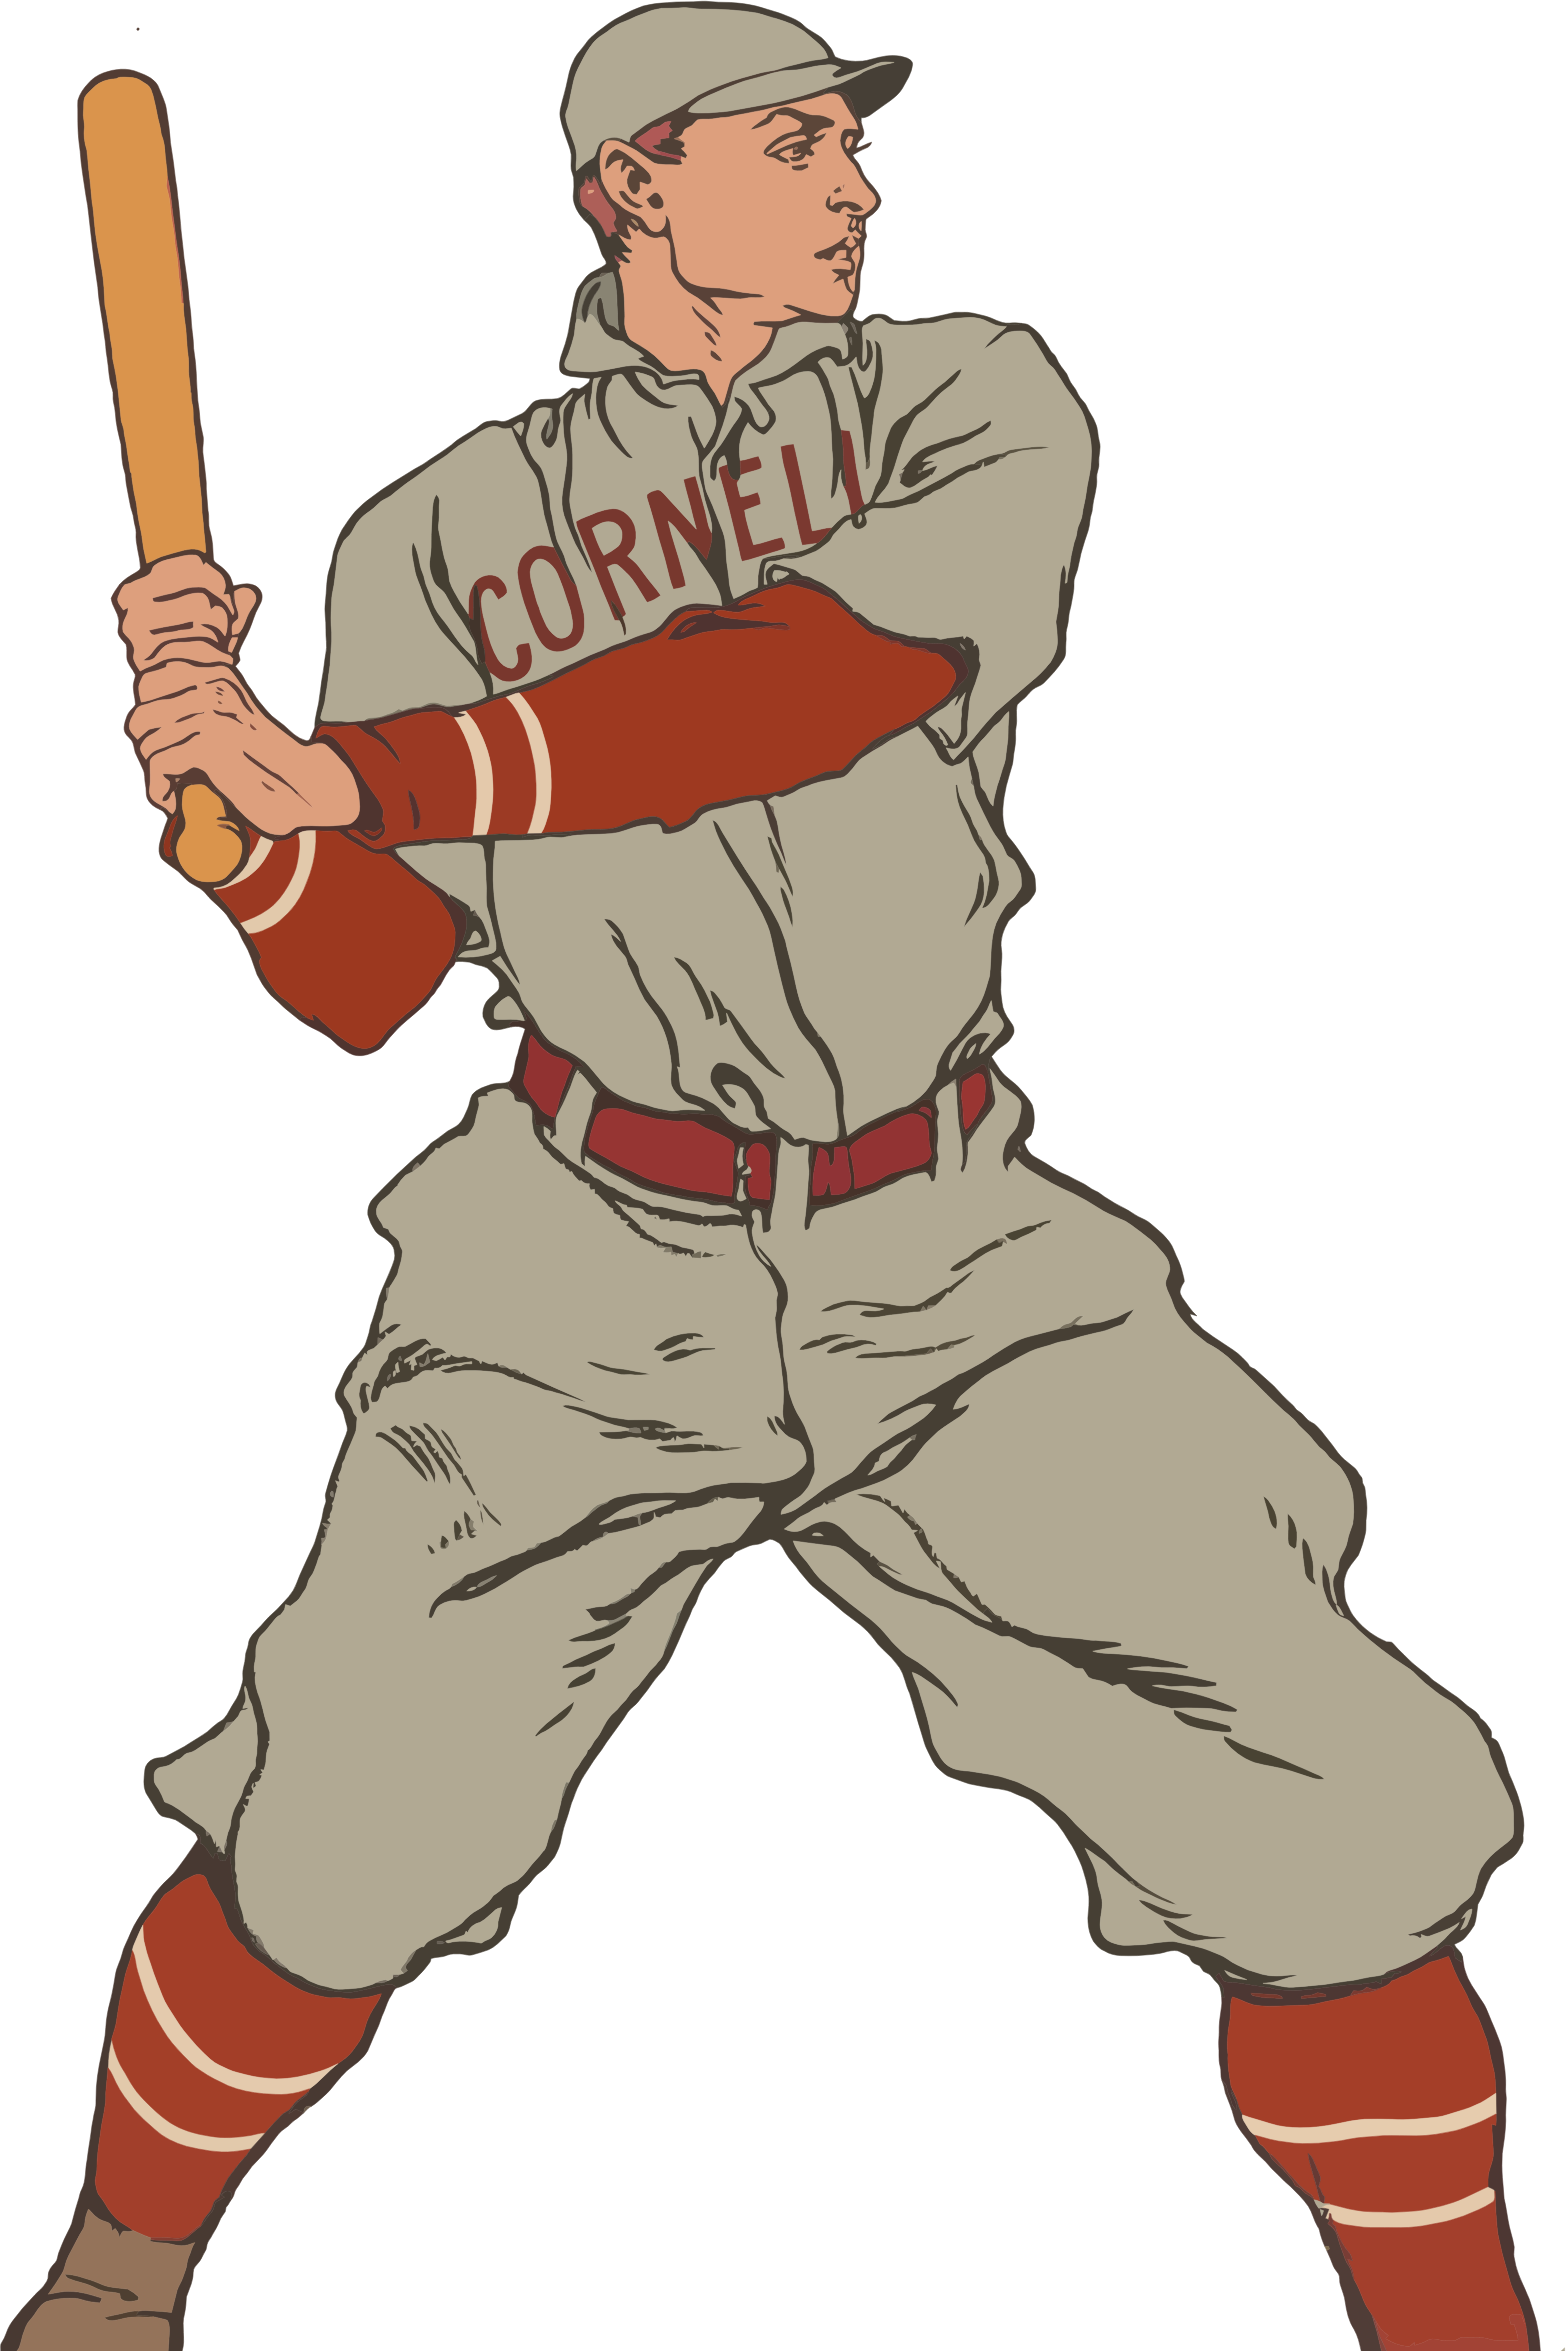 Baseball star clipart clip art library library Vintage Baseball Player by @GDJ, Removed the background and isolated ... clip art library library